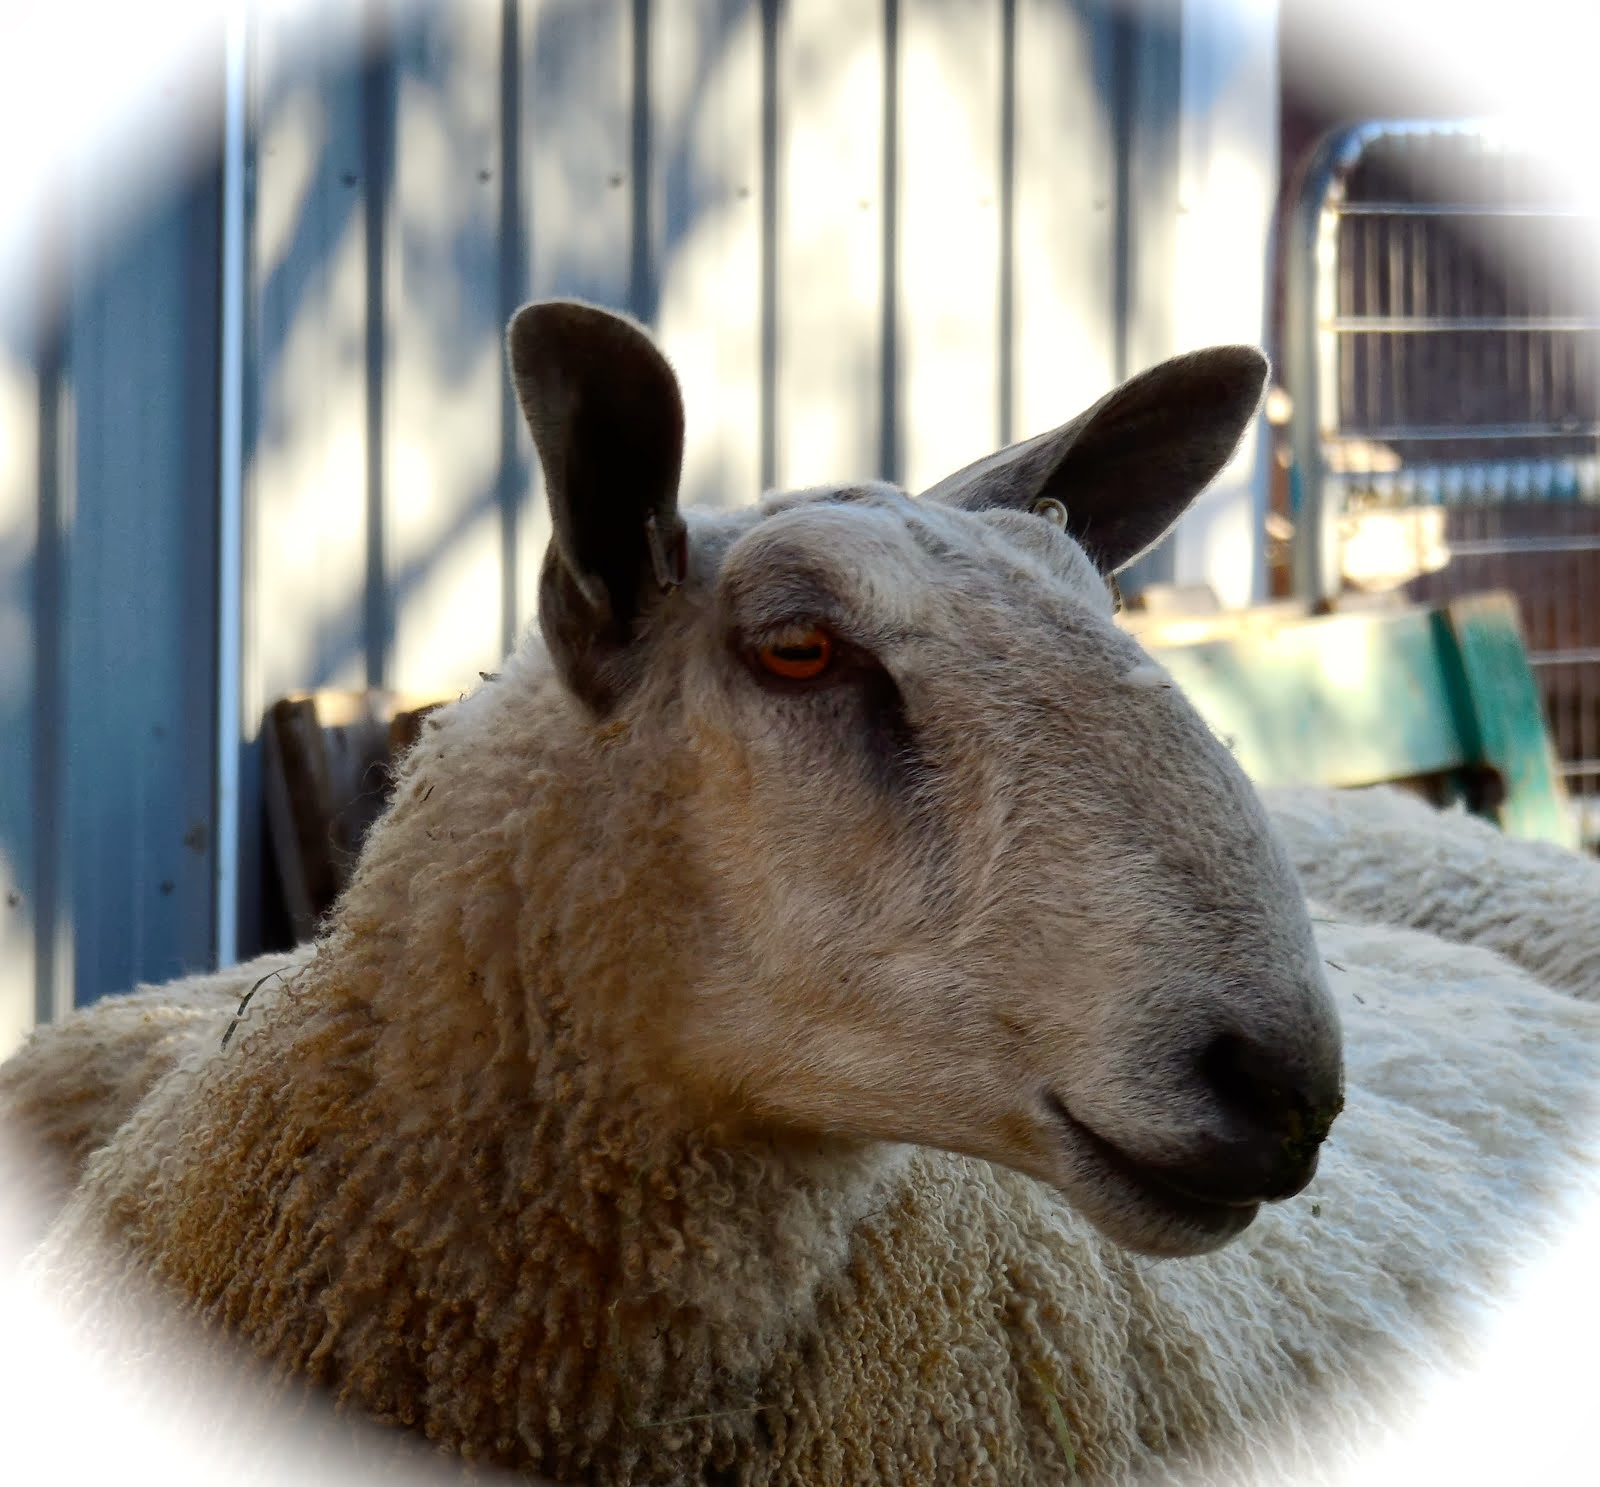 A Tumble Creek Farm Ewe